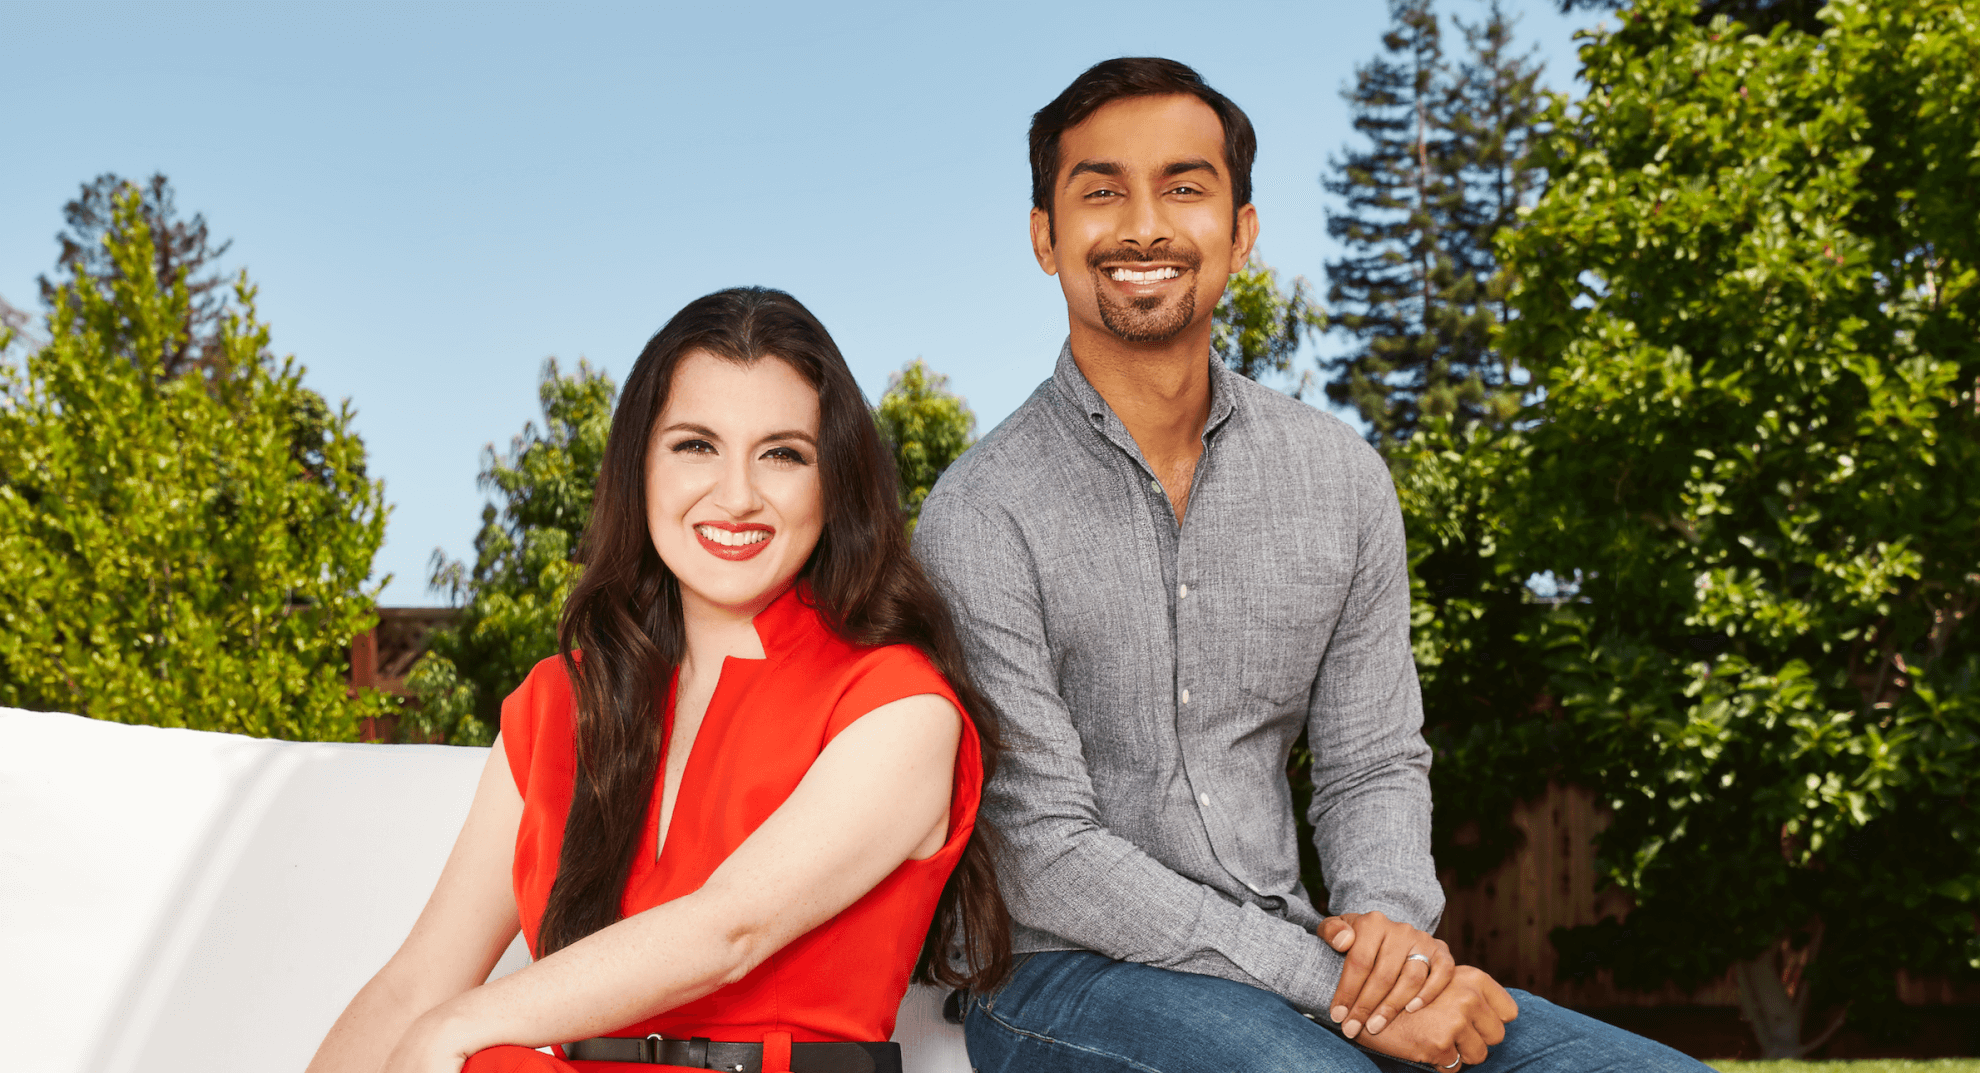 Instacart Appoints Board Member Fidji Simo to Chief Executive Officer and Announces Founder and Current CEO Apoorva Mehta Will Serve as Executive Chairman of the Board